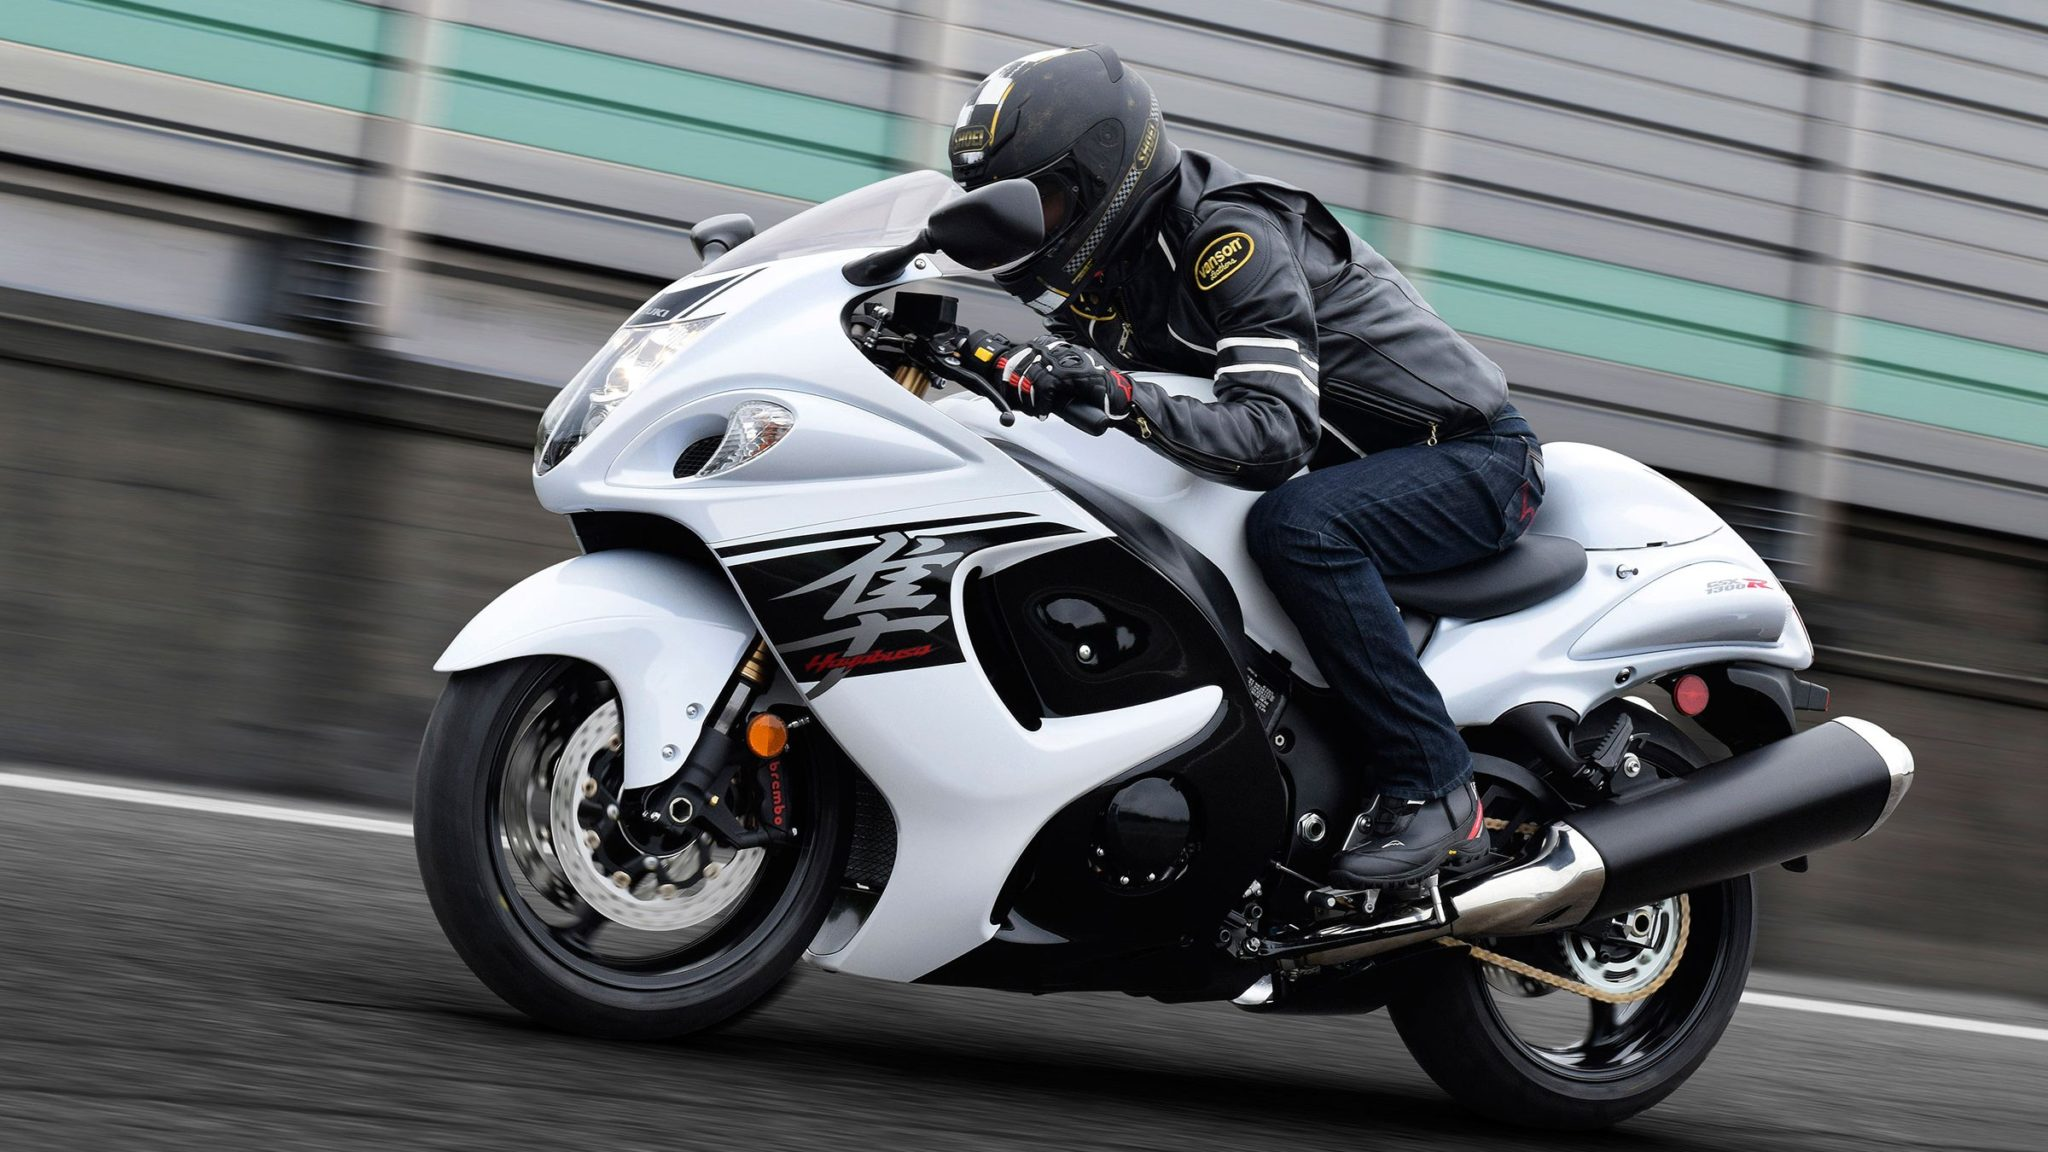 Suzuki confirms the end of the road for the mighty Hayabusa